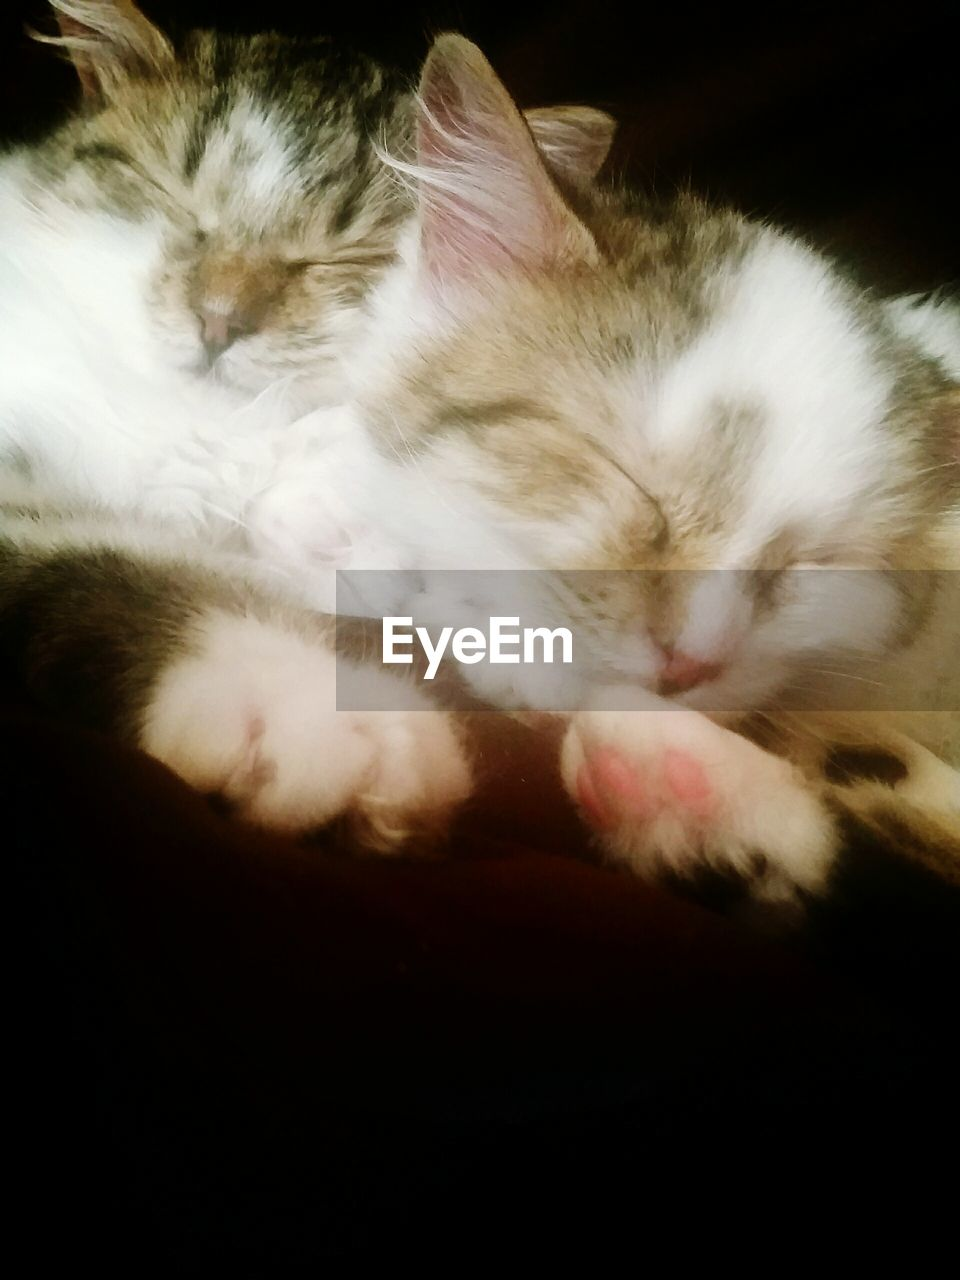 domestic, mammal, pets, domestic animals, cat, animal themes, animal, domestic cat, feline, one animal, vertebrate, relaxation, sleeping, eyes closed, indoors, resting, no people, close-up, lying down, whisker, animal head, napping